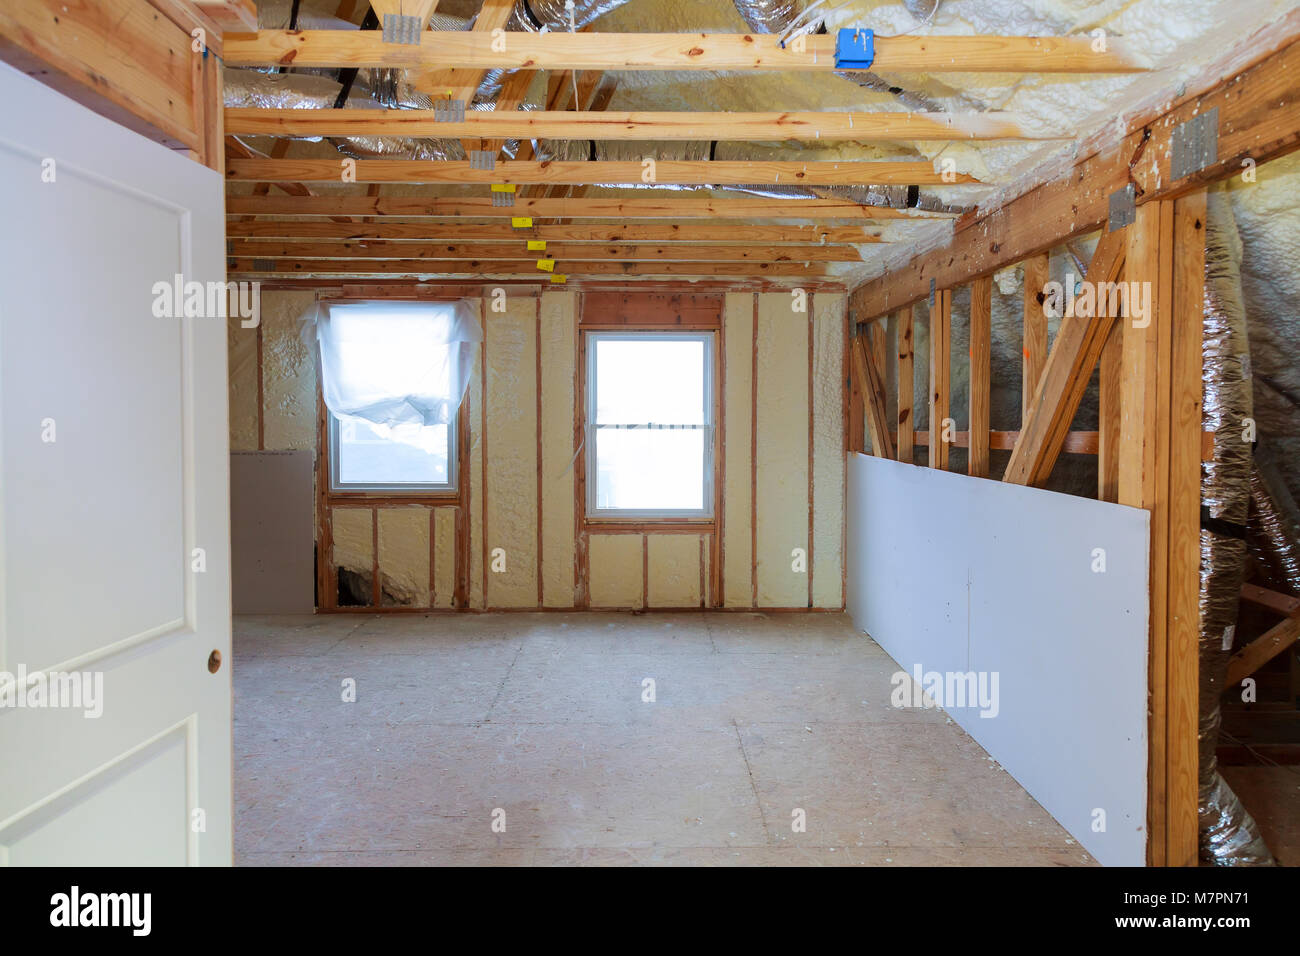 Thermal And Hidro Insulation Inside Wall Insulation Interior View Stock  Photo: 176905877   Alamy